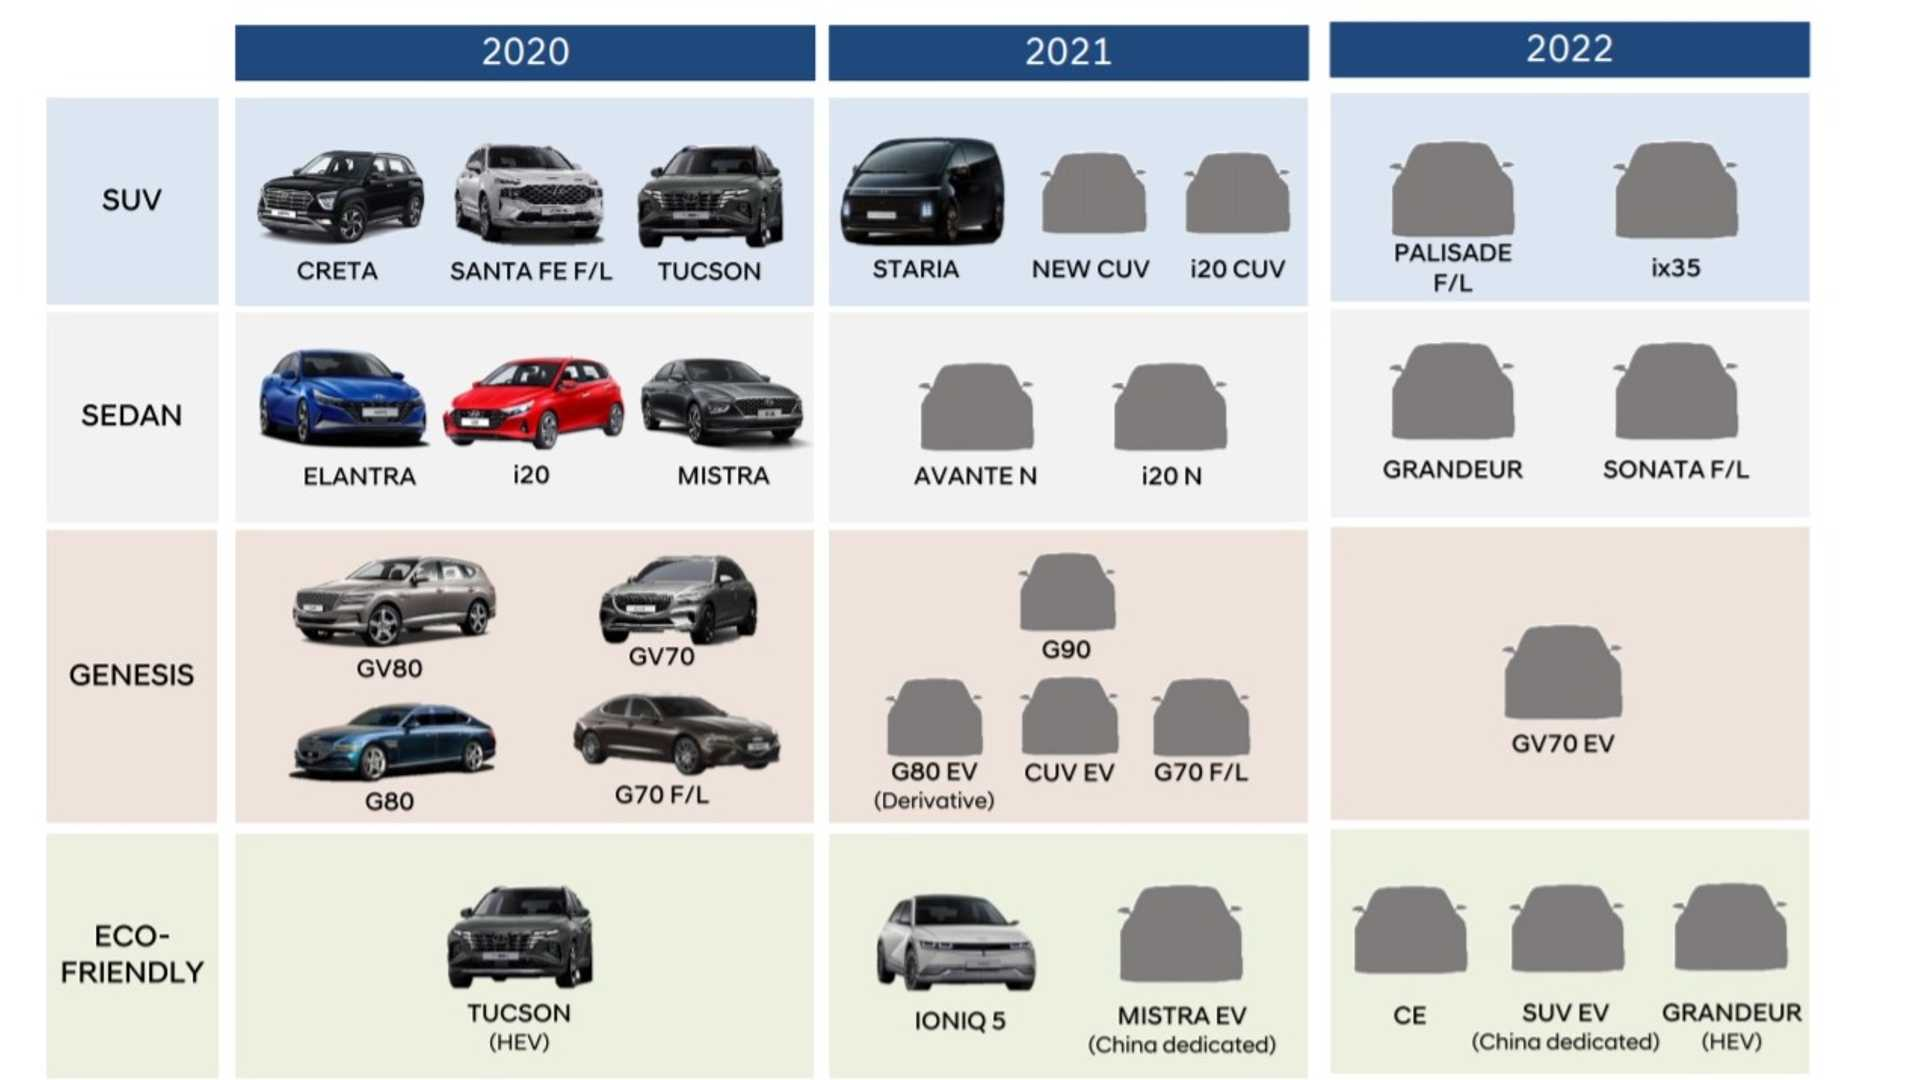 The stylish and powerful Palisade seven-seater finally enabled Hyundai to gain ground in the SUV segment of the market. Even though the model is still fresh and quite popular, it will be receiving an update heading into the next year.